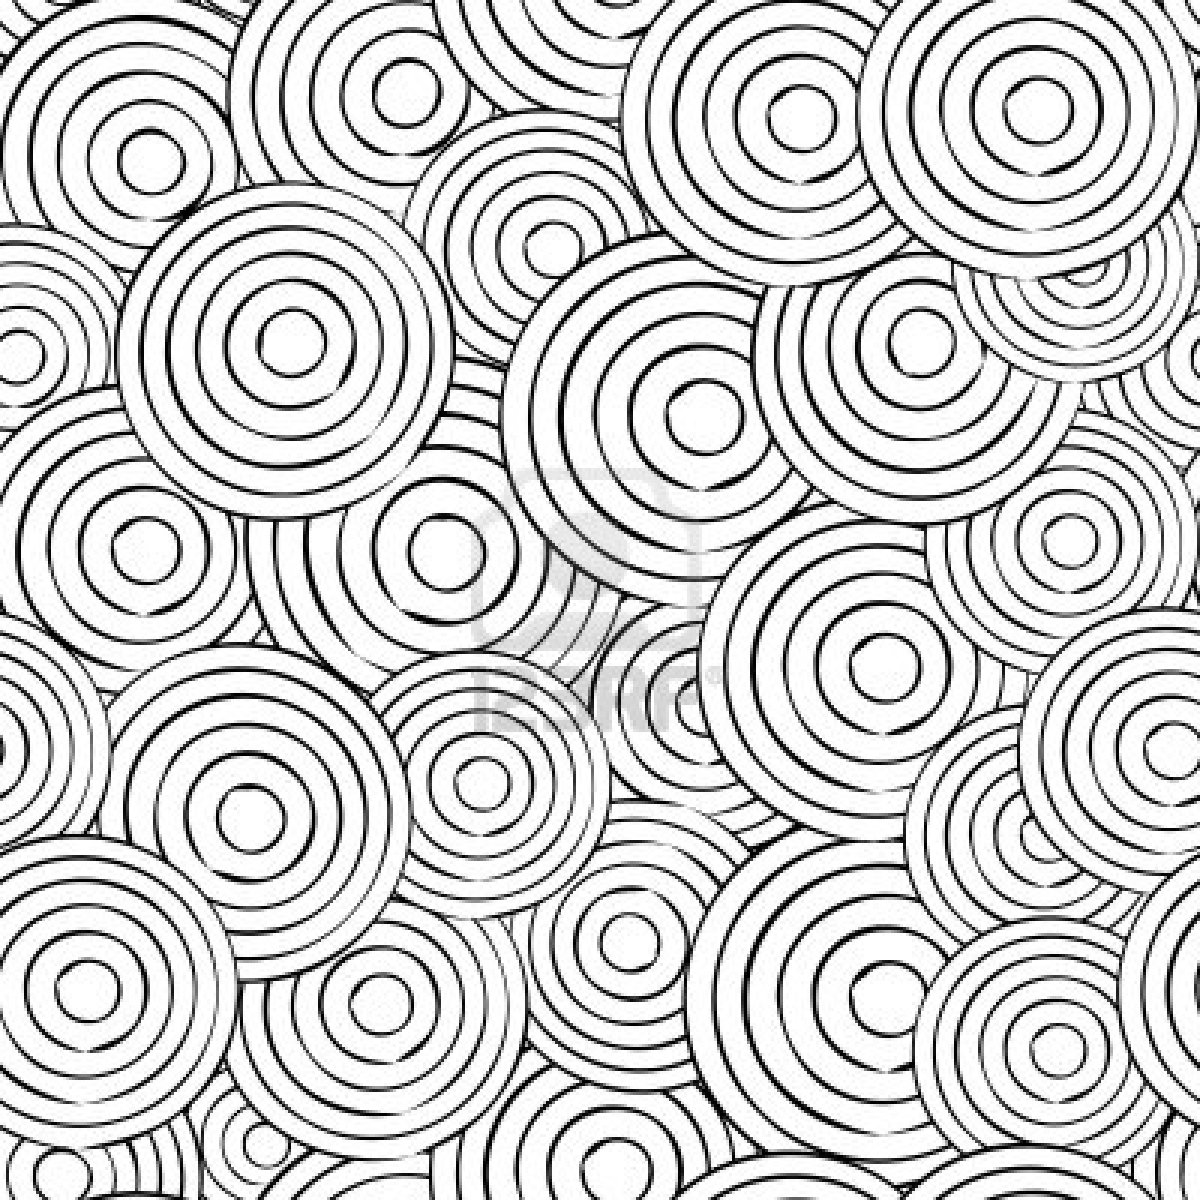 coloring pages patterns | Cool Drawing Patterns at GetDrawings.com | Free for ...